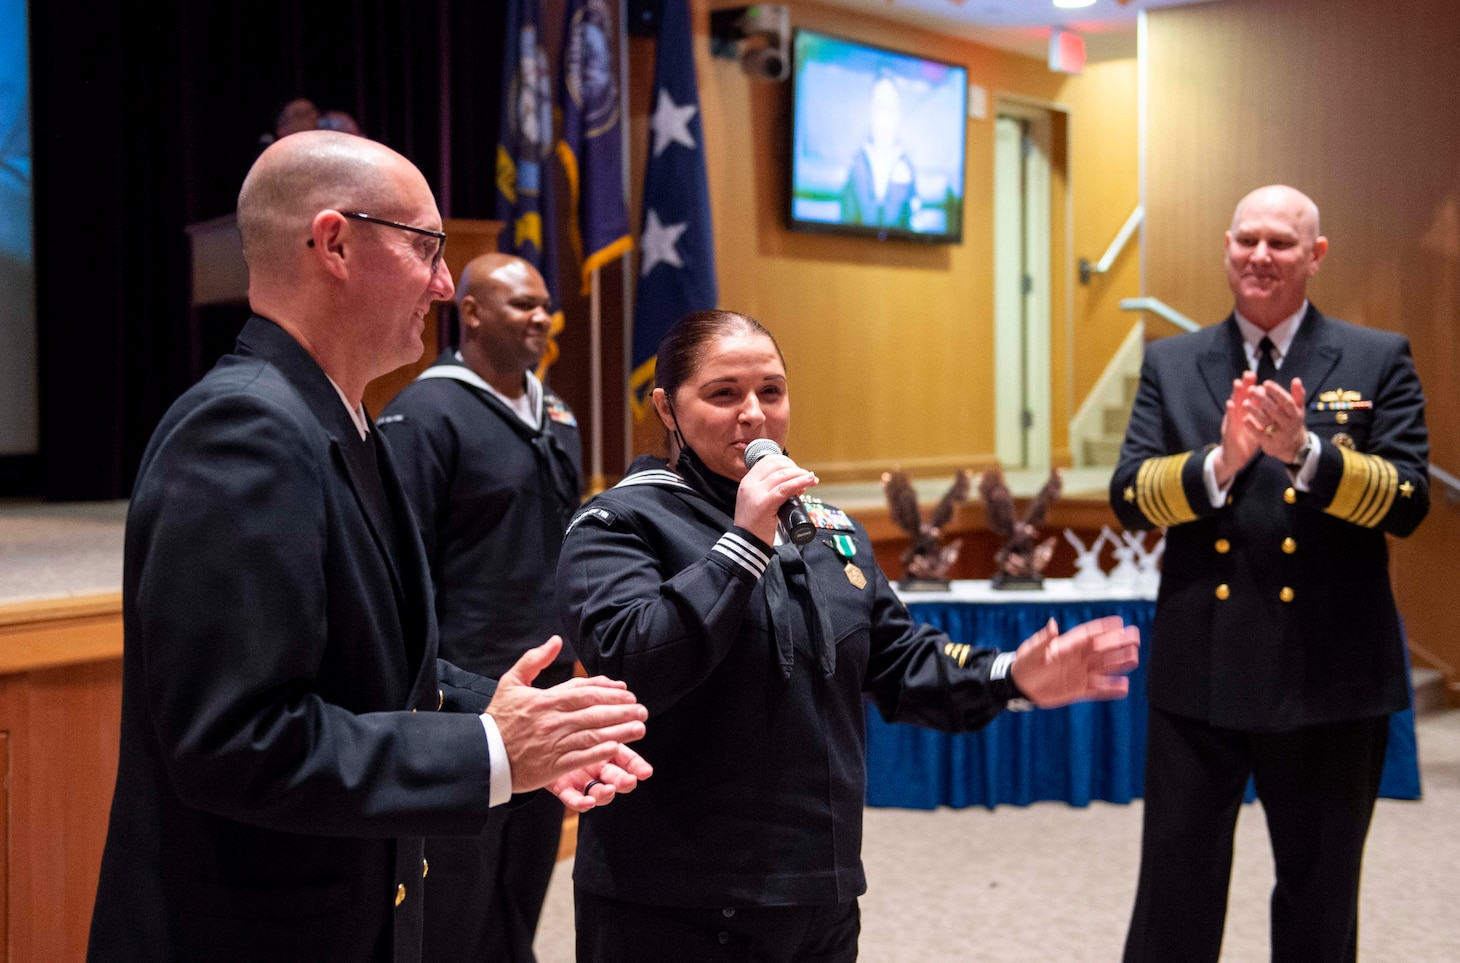 Adm. Christopher W. Grady, commander, U.S. Fleet Forces Command (USFFC), right, and USFFC Fleet Master Chief Rick O�Rawe, left, congratulate USFFC 2020 Sea Sailor of the Year (SOY) Personnel Specialist 1st Class Felicia Oxendine, Commander, Carrier Strike Group Ten, center, during a ceremony at the Joint Forces Staff College, May 27, 2021.